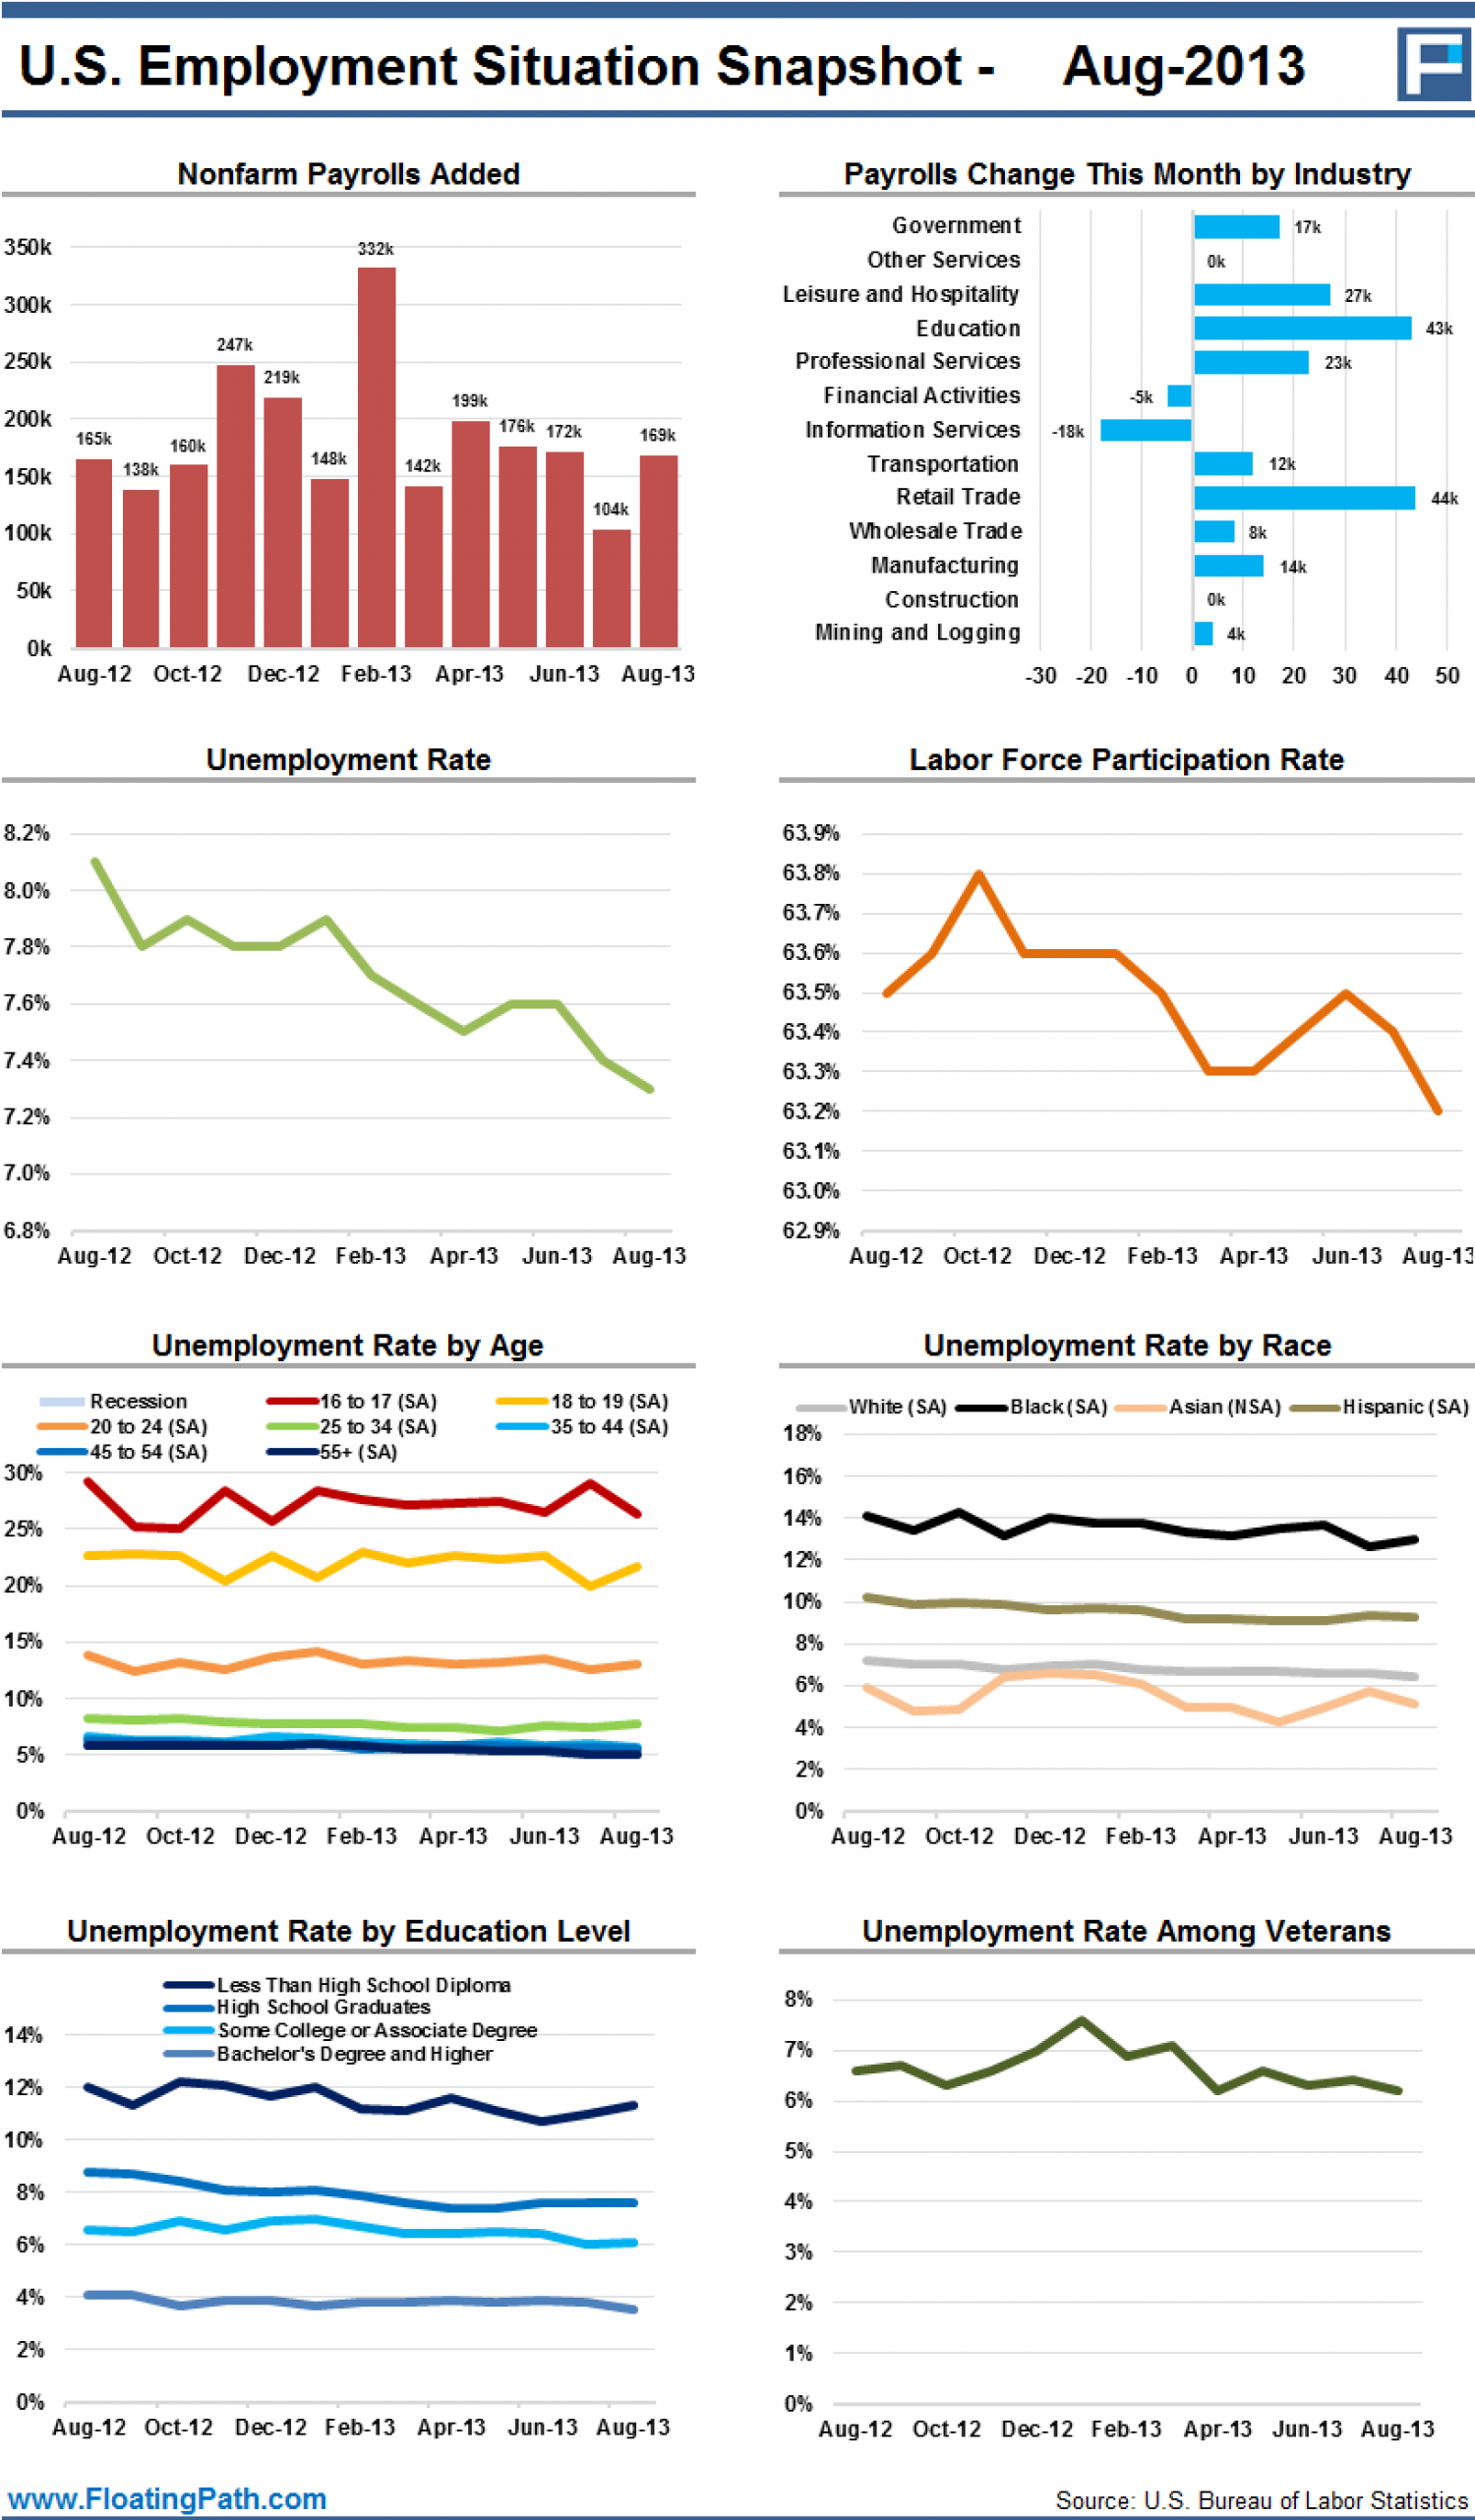 The U.S. Employment Situation - August 2013 Infographic